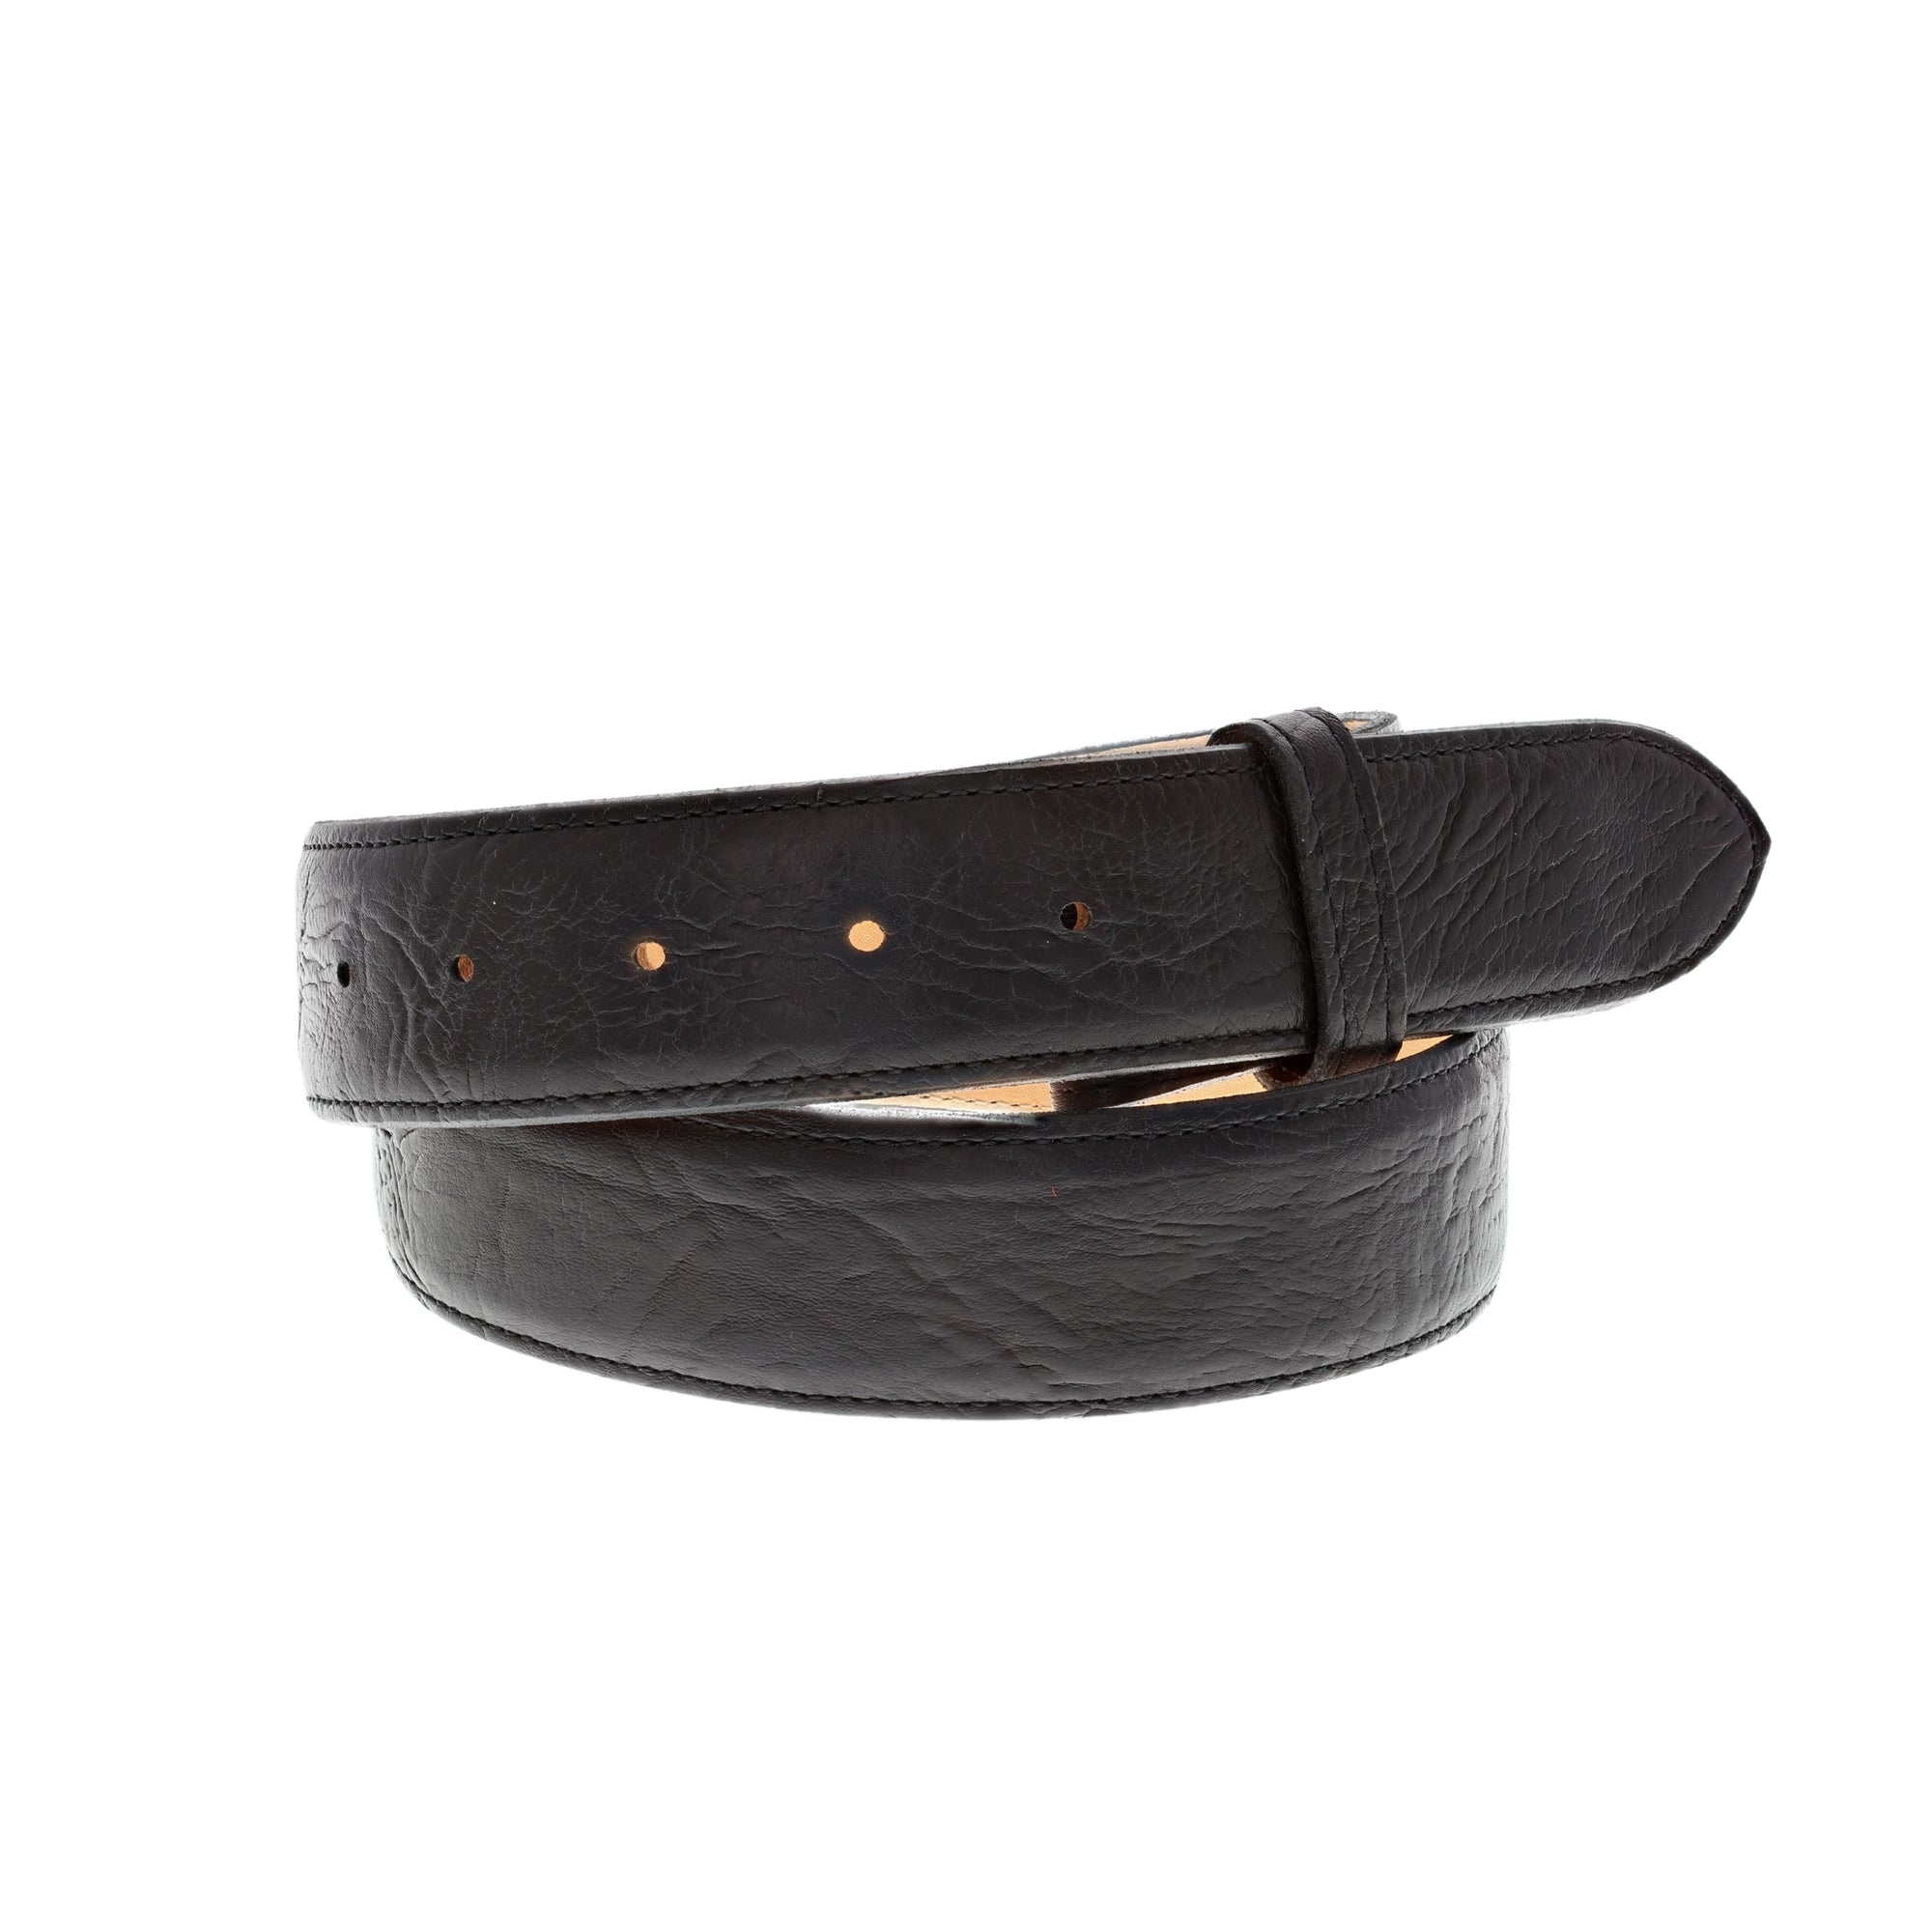 "1 1/2"" Straight Bull Shoulder Stitched Edge Belt"